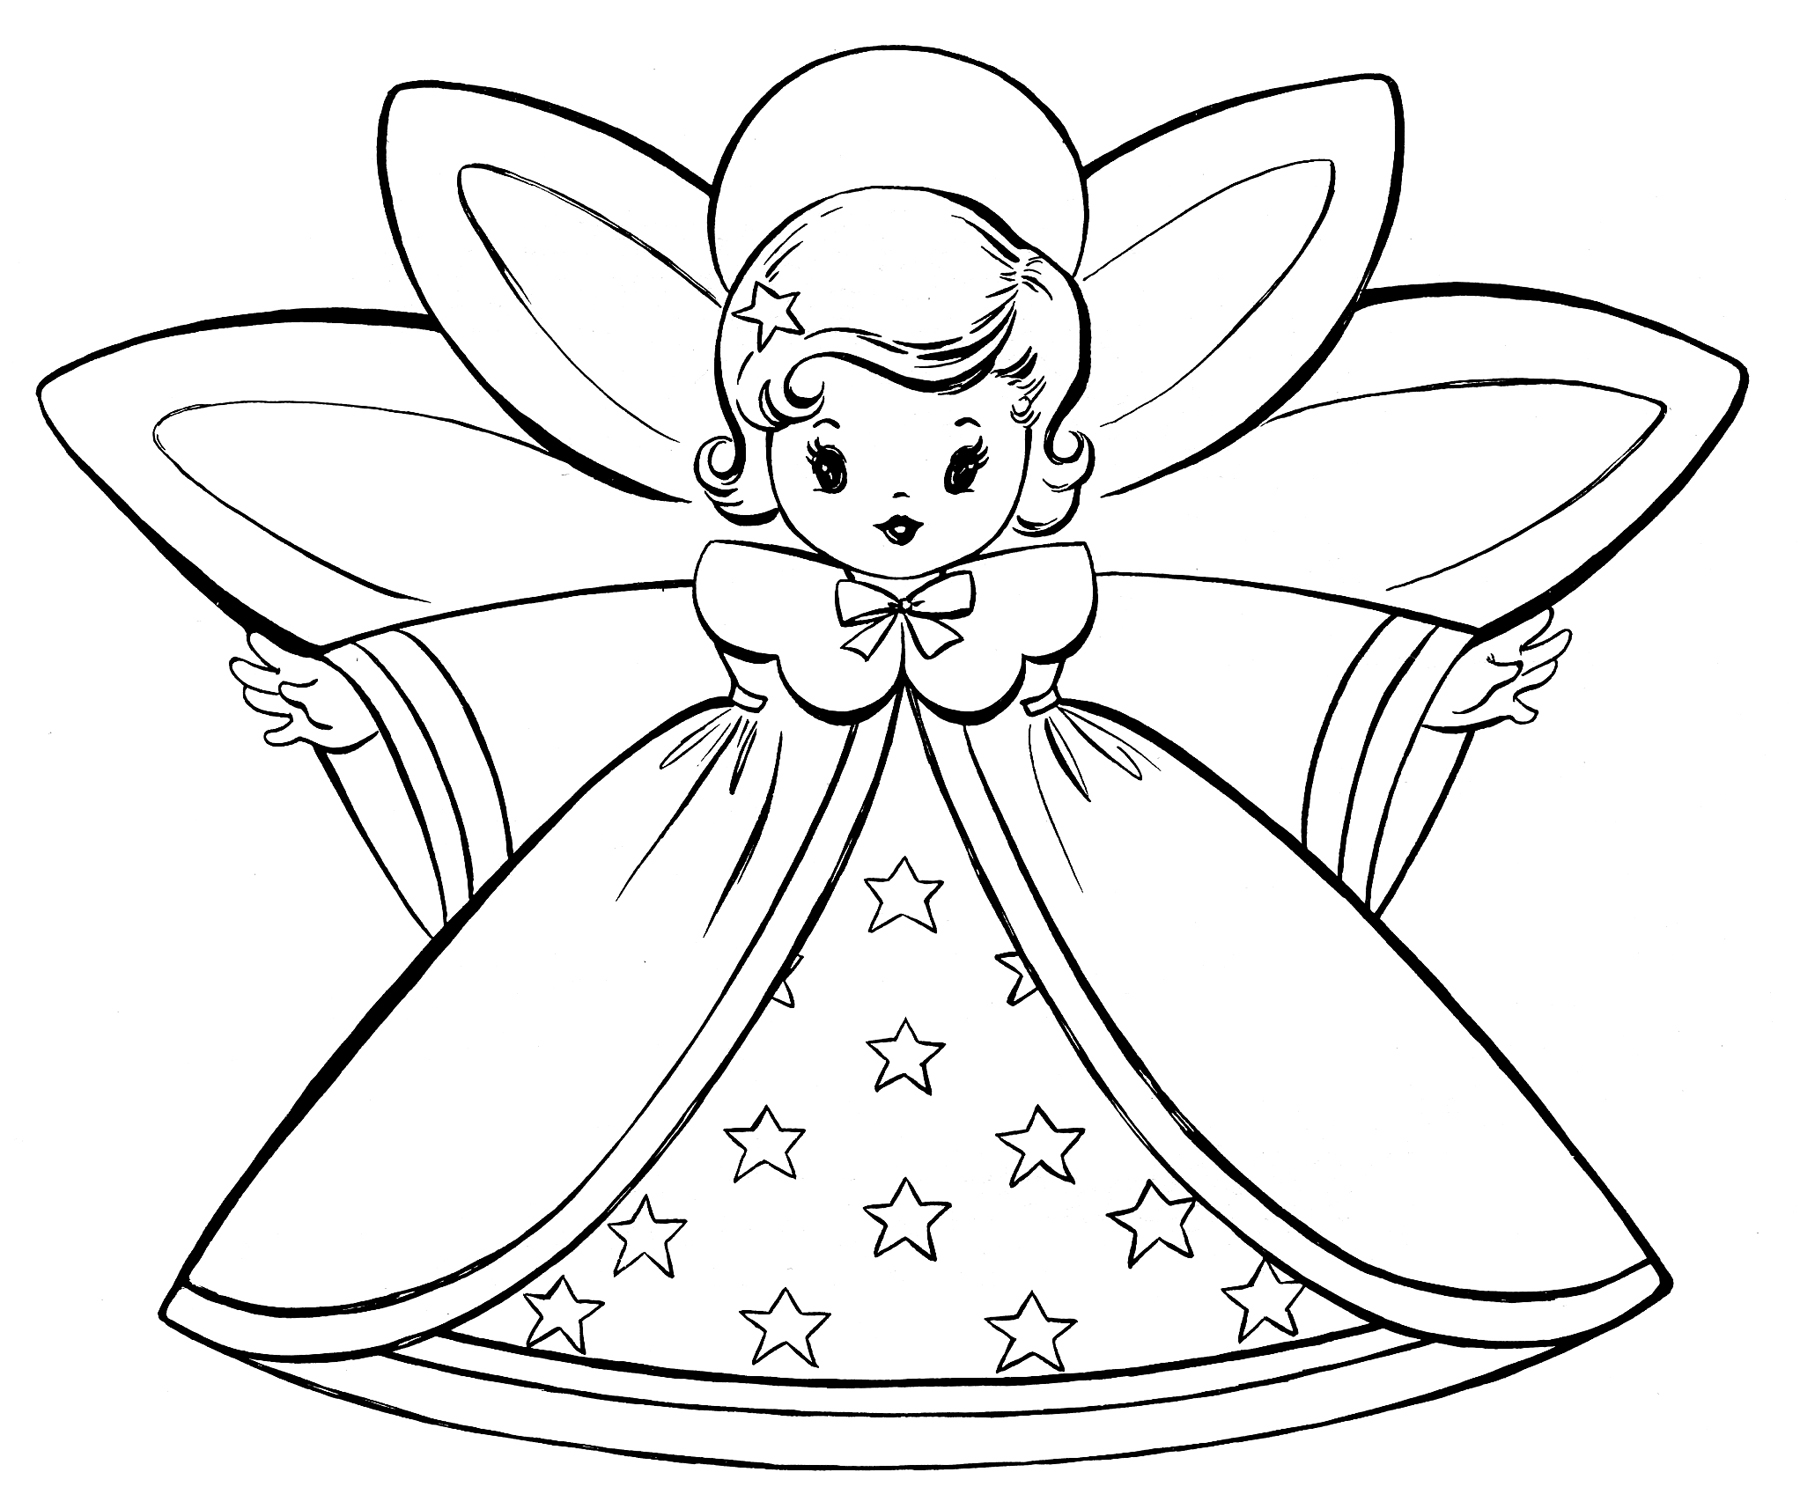 Angel clipart coloring page #4